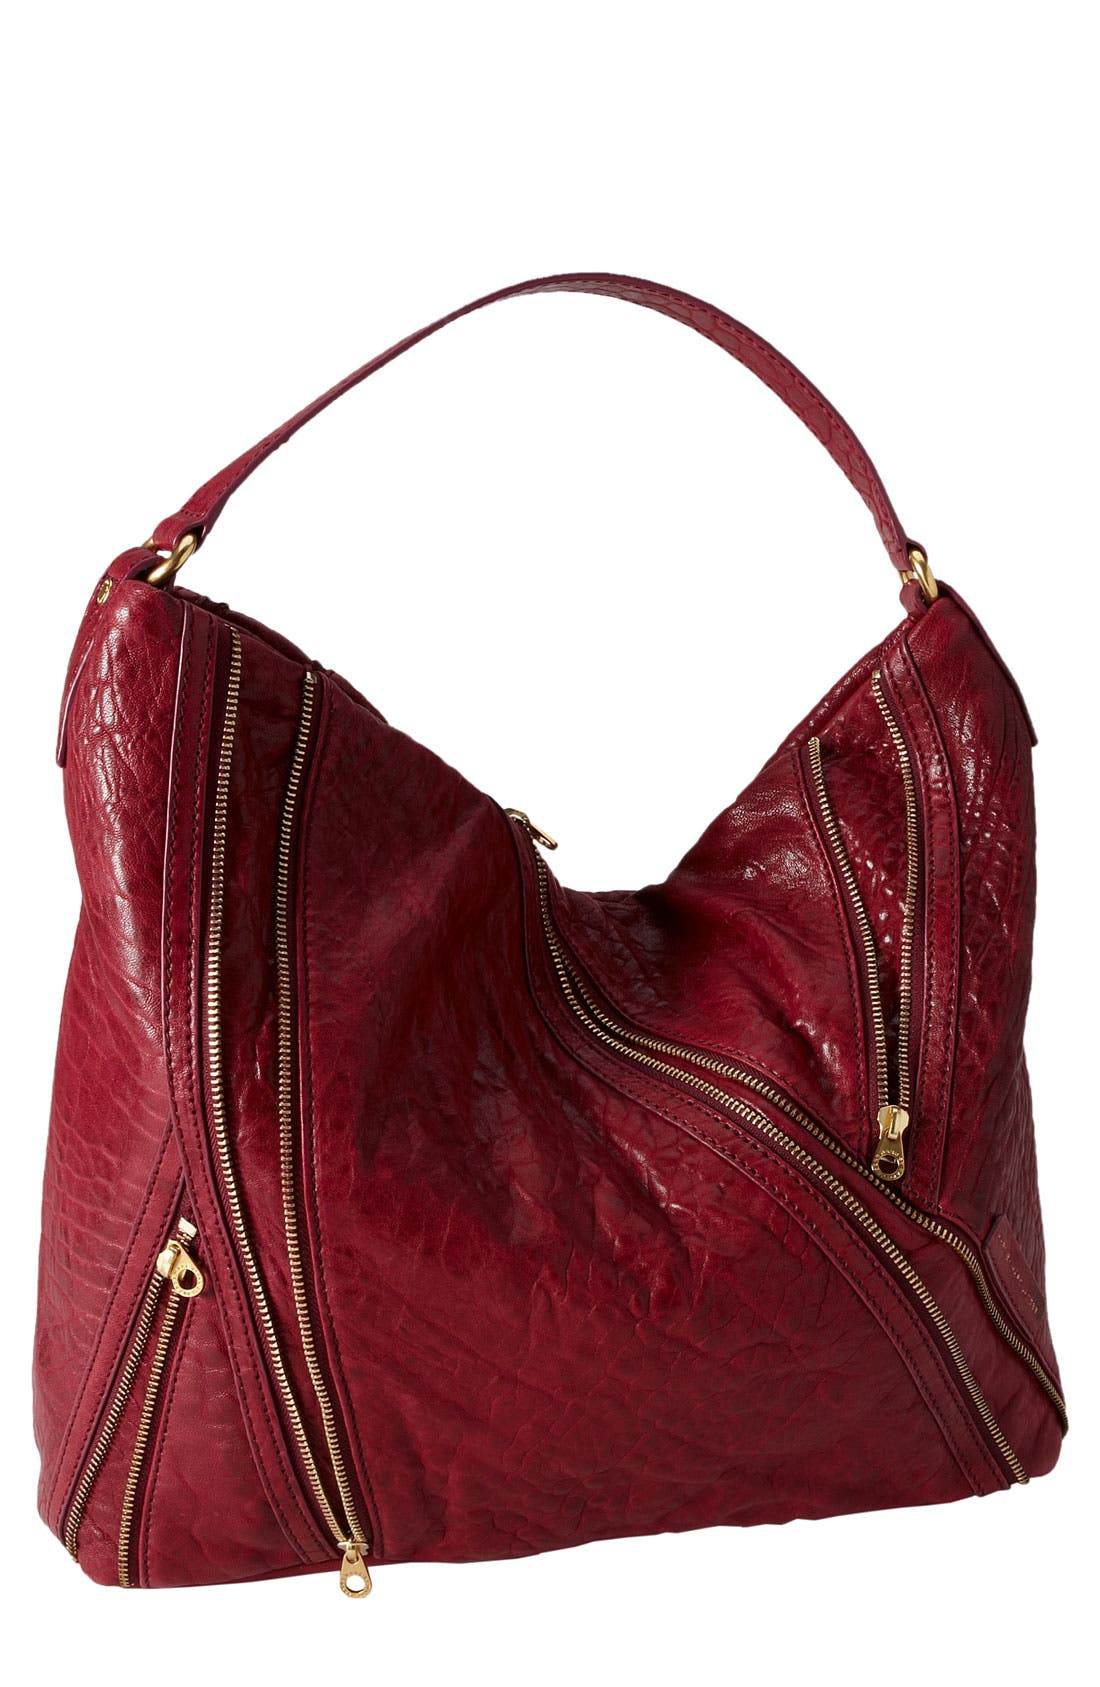 Alternate Image 1 Selected - MARC BY MARC JACOBS 'Flash - Leola' Leather Hobo